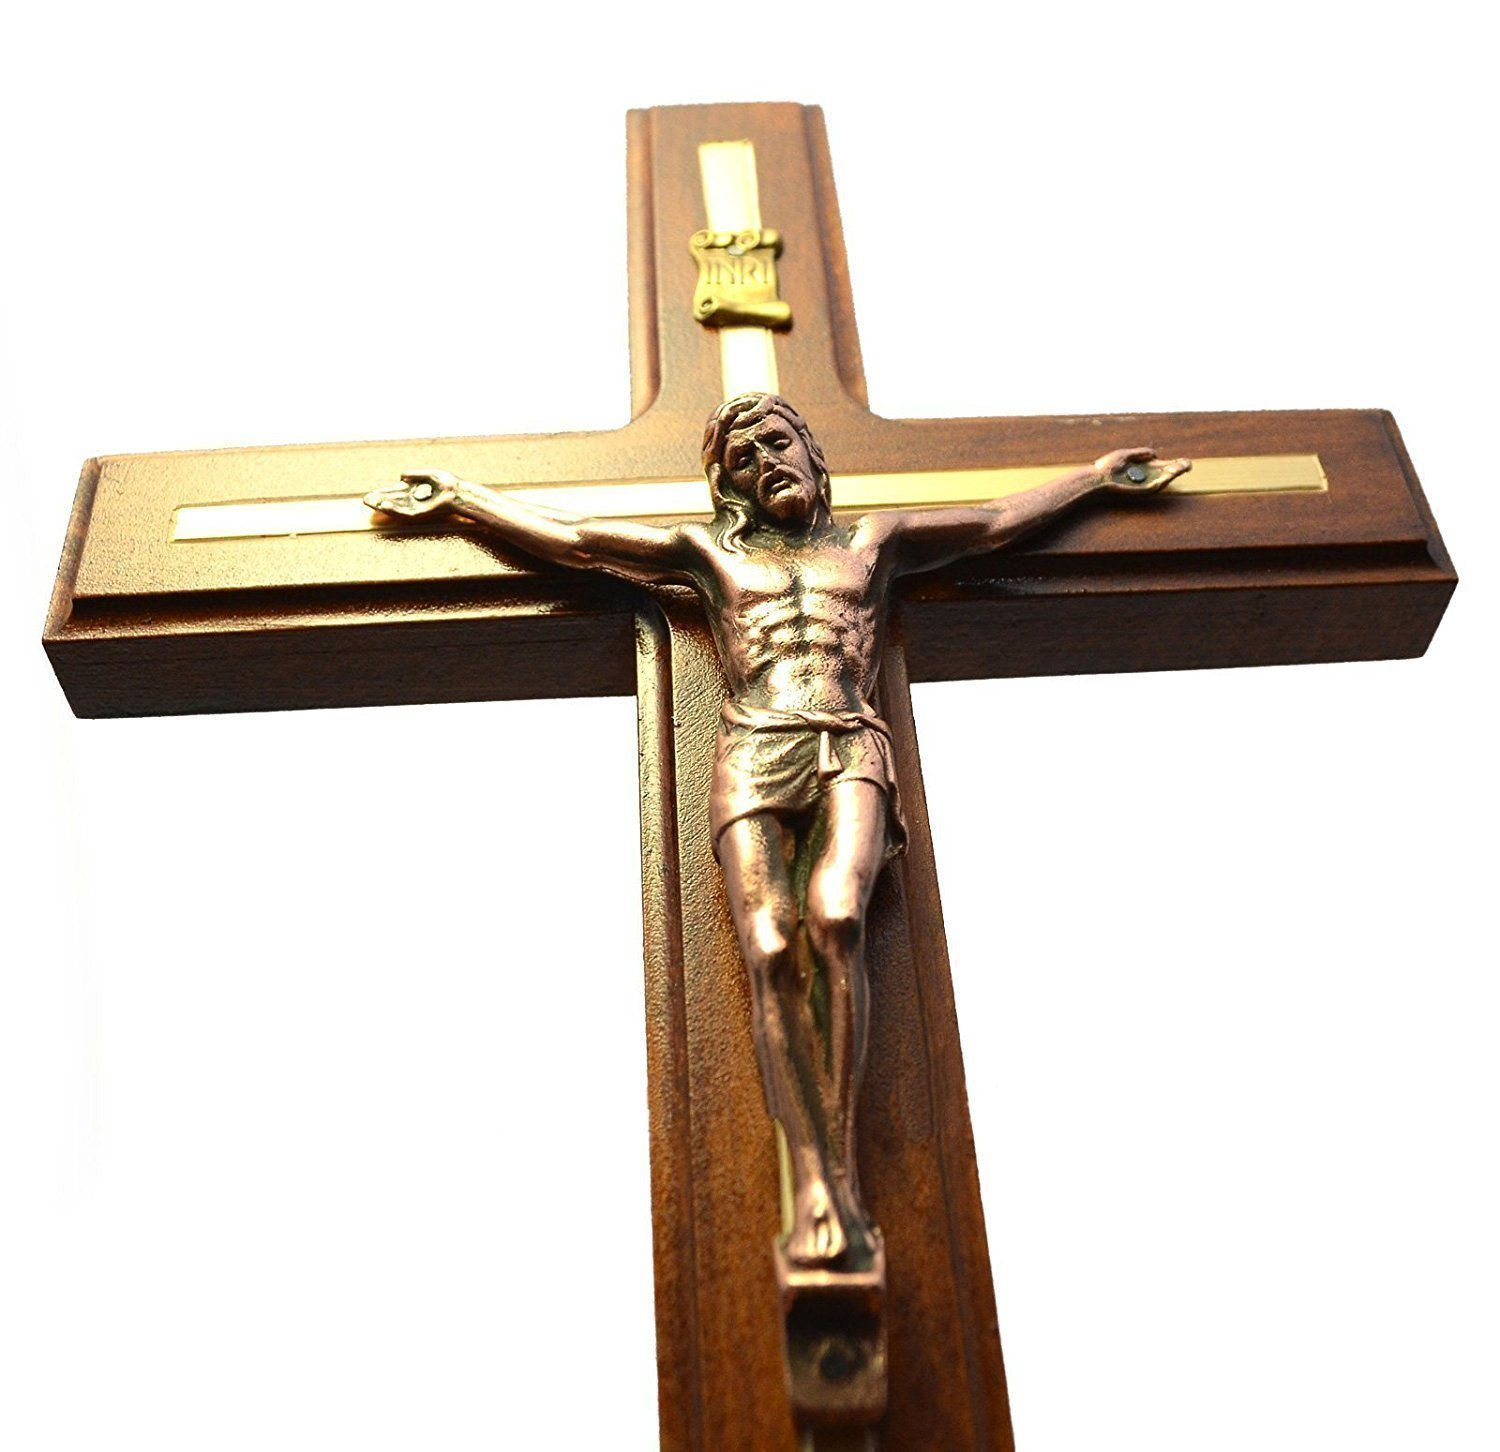 Handmade Wall Cross Wooden Catholic Wall Crucifix